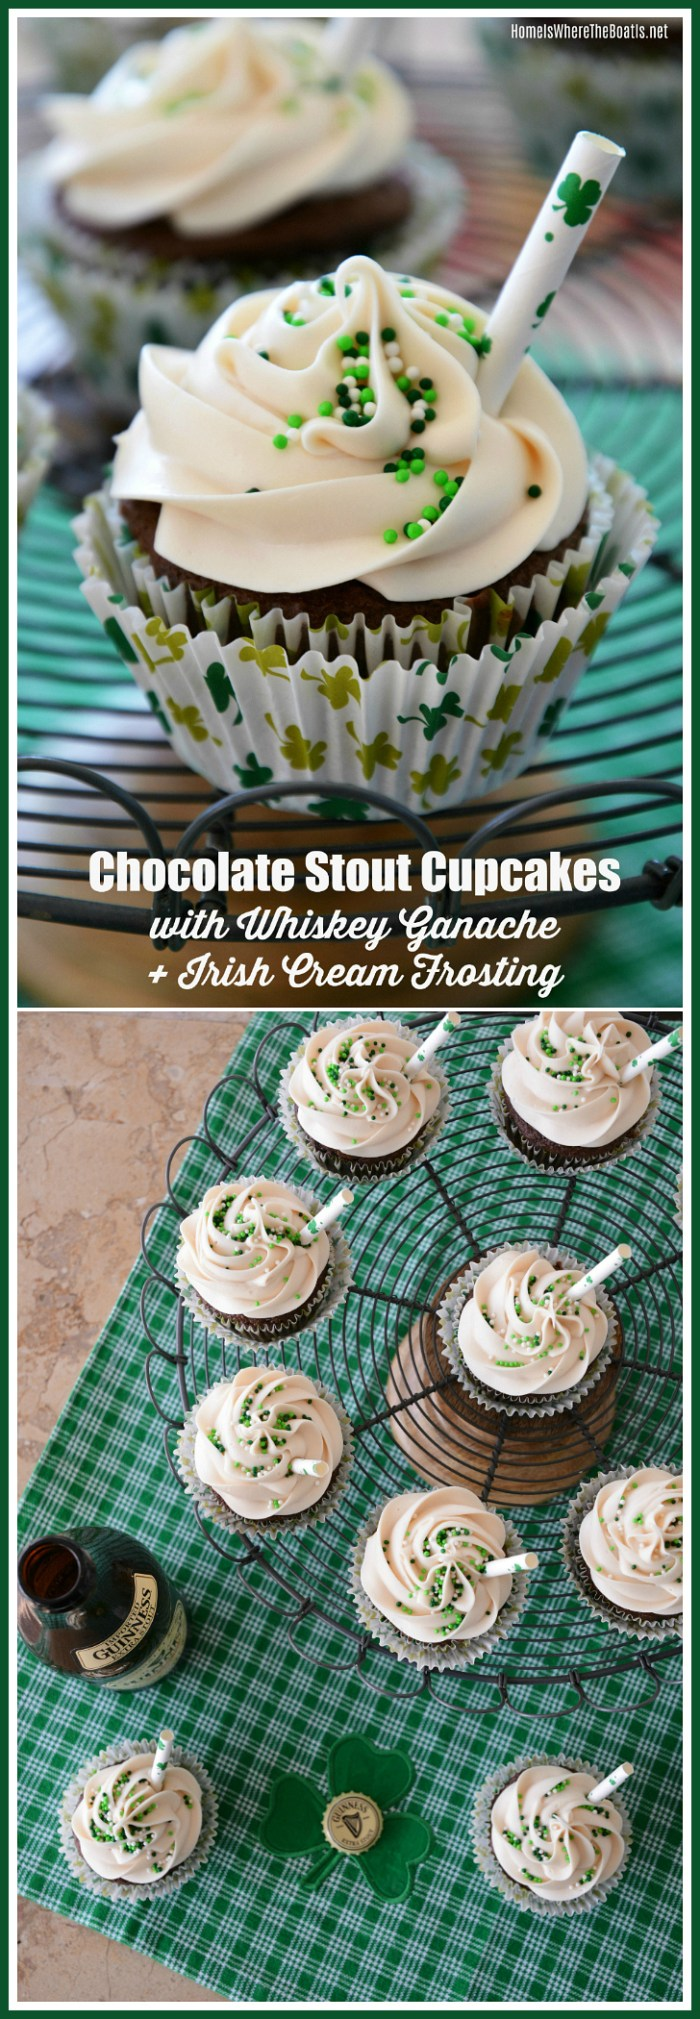 Eat, Drink and Be Irish: Chocolate Stout Cupcakes with Whiskey Ganache and Irish Cream Frosting | ©homeiswheretheboatis.net #stpatricksday #guinness #recipe #cupcake #Irish